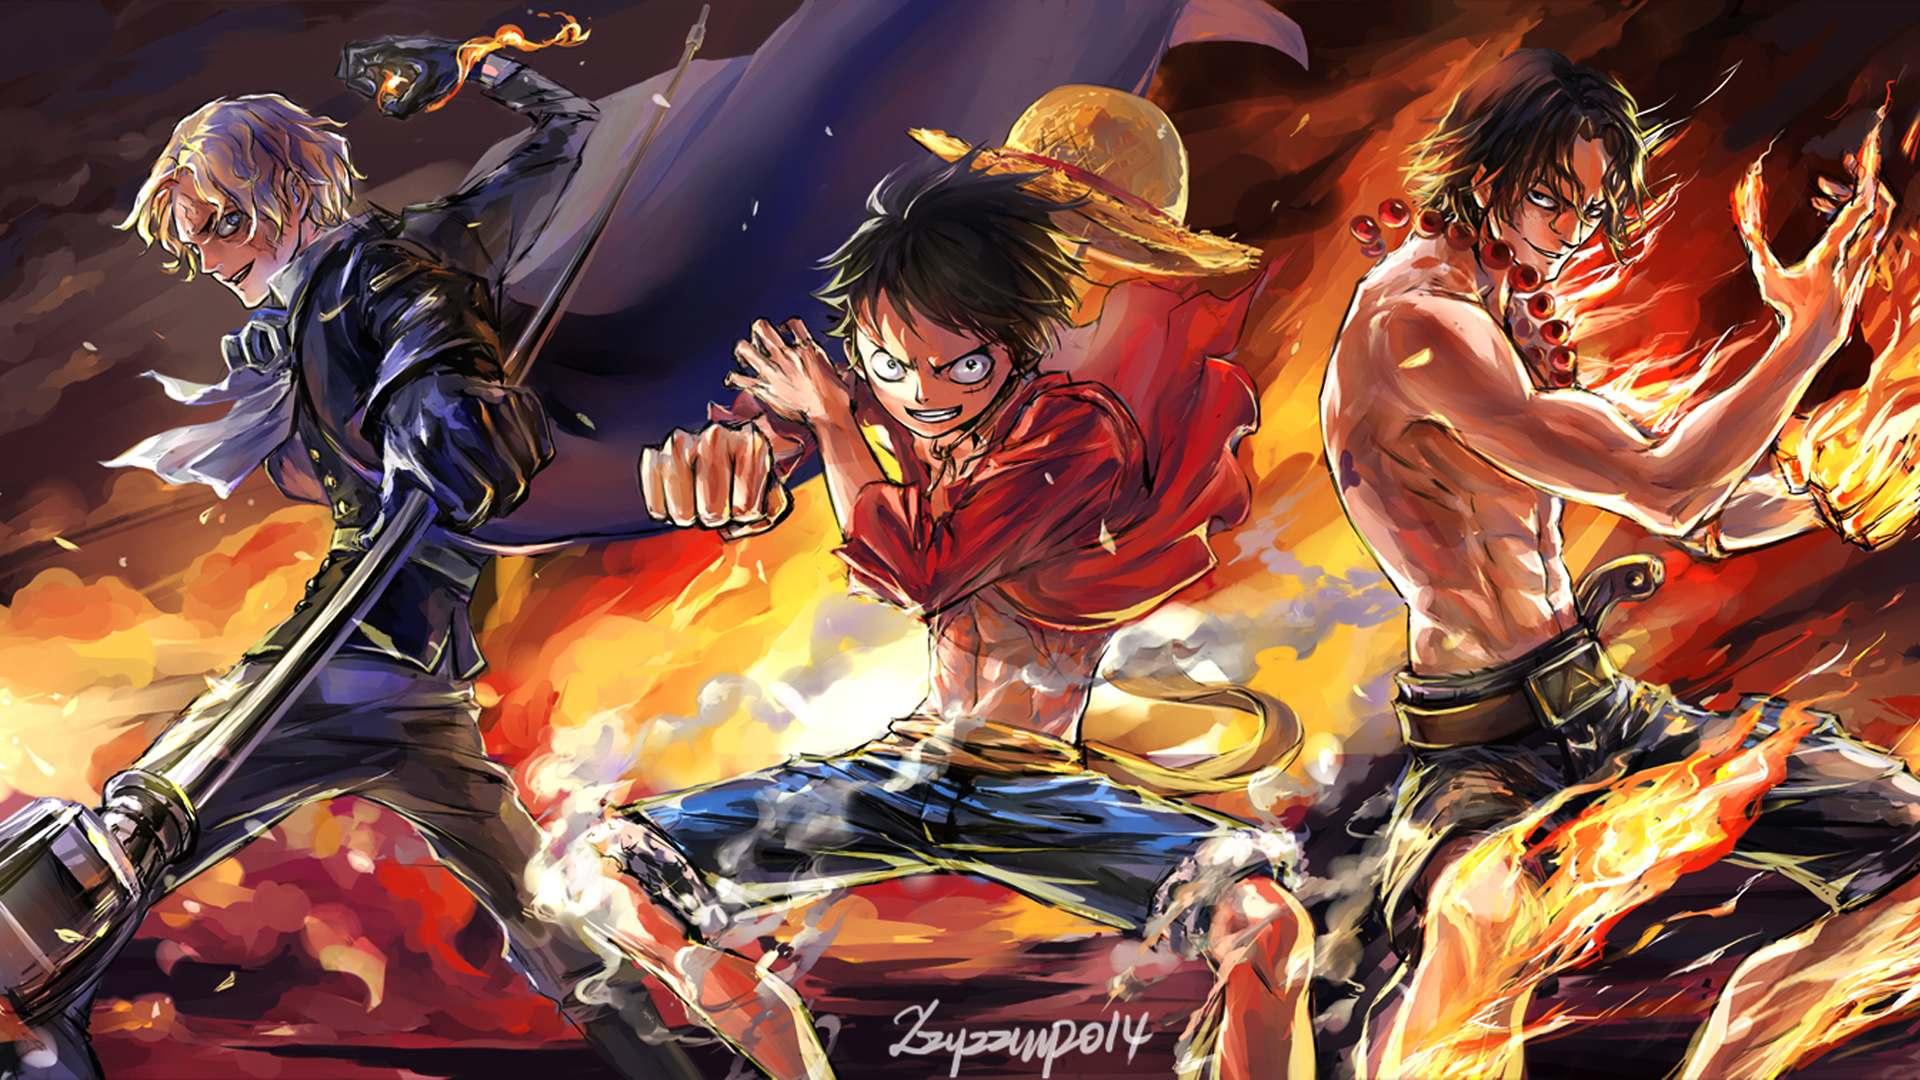 Free download One Piece Wallpapers Best Wallpapers 1920x1080 for your Desktop, Mobile & Tablet ...